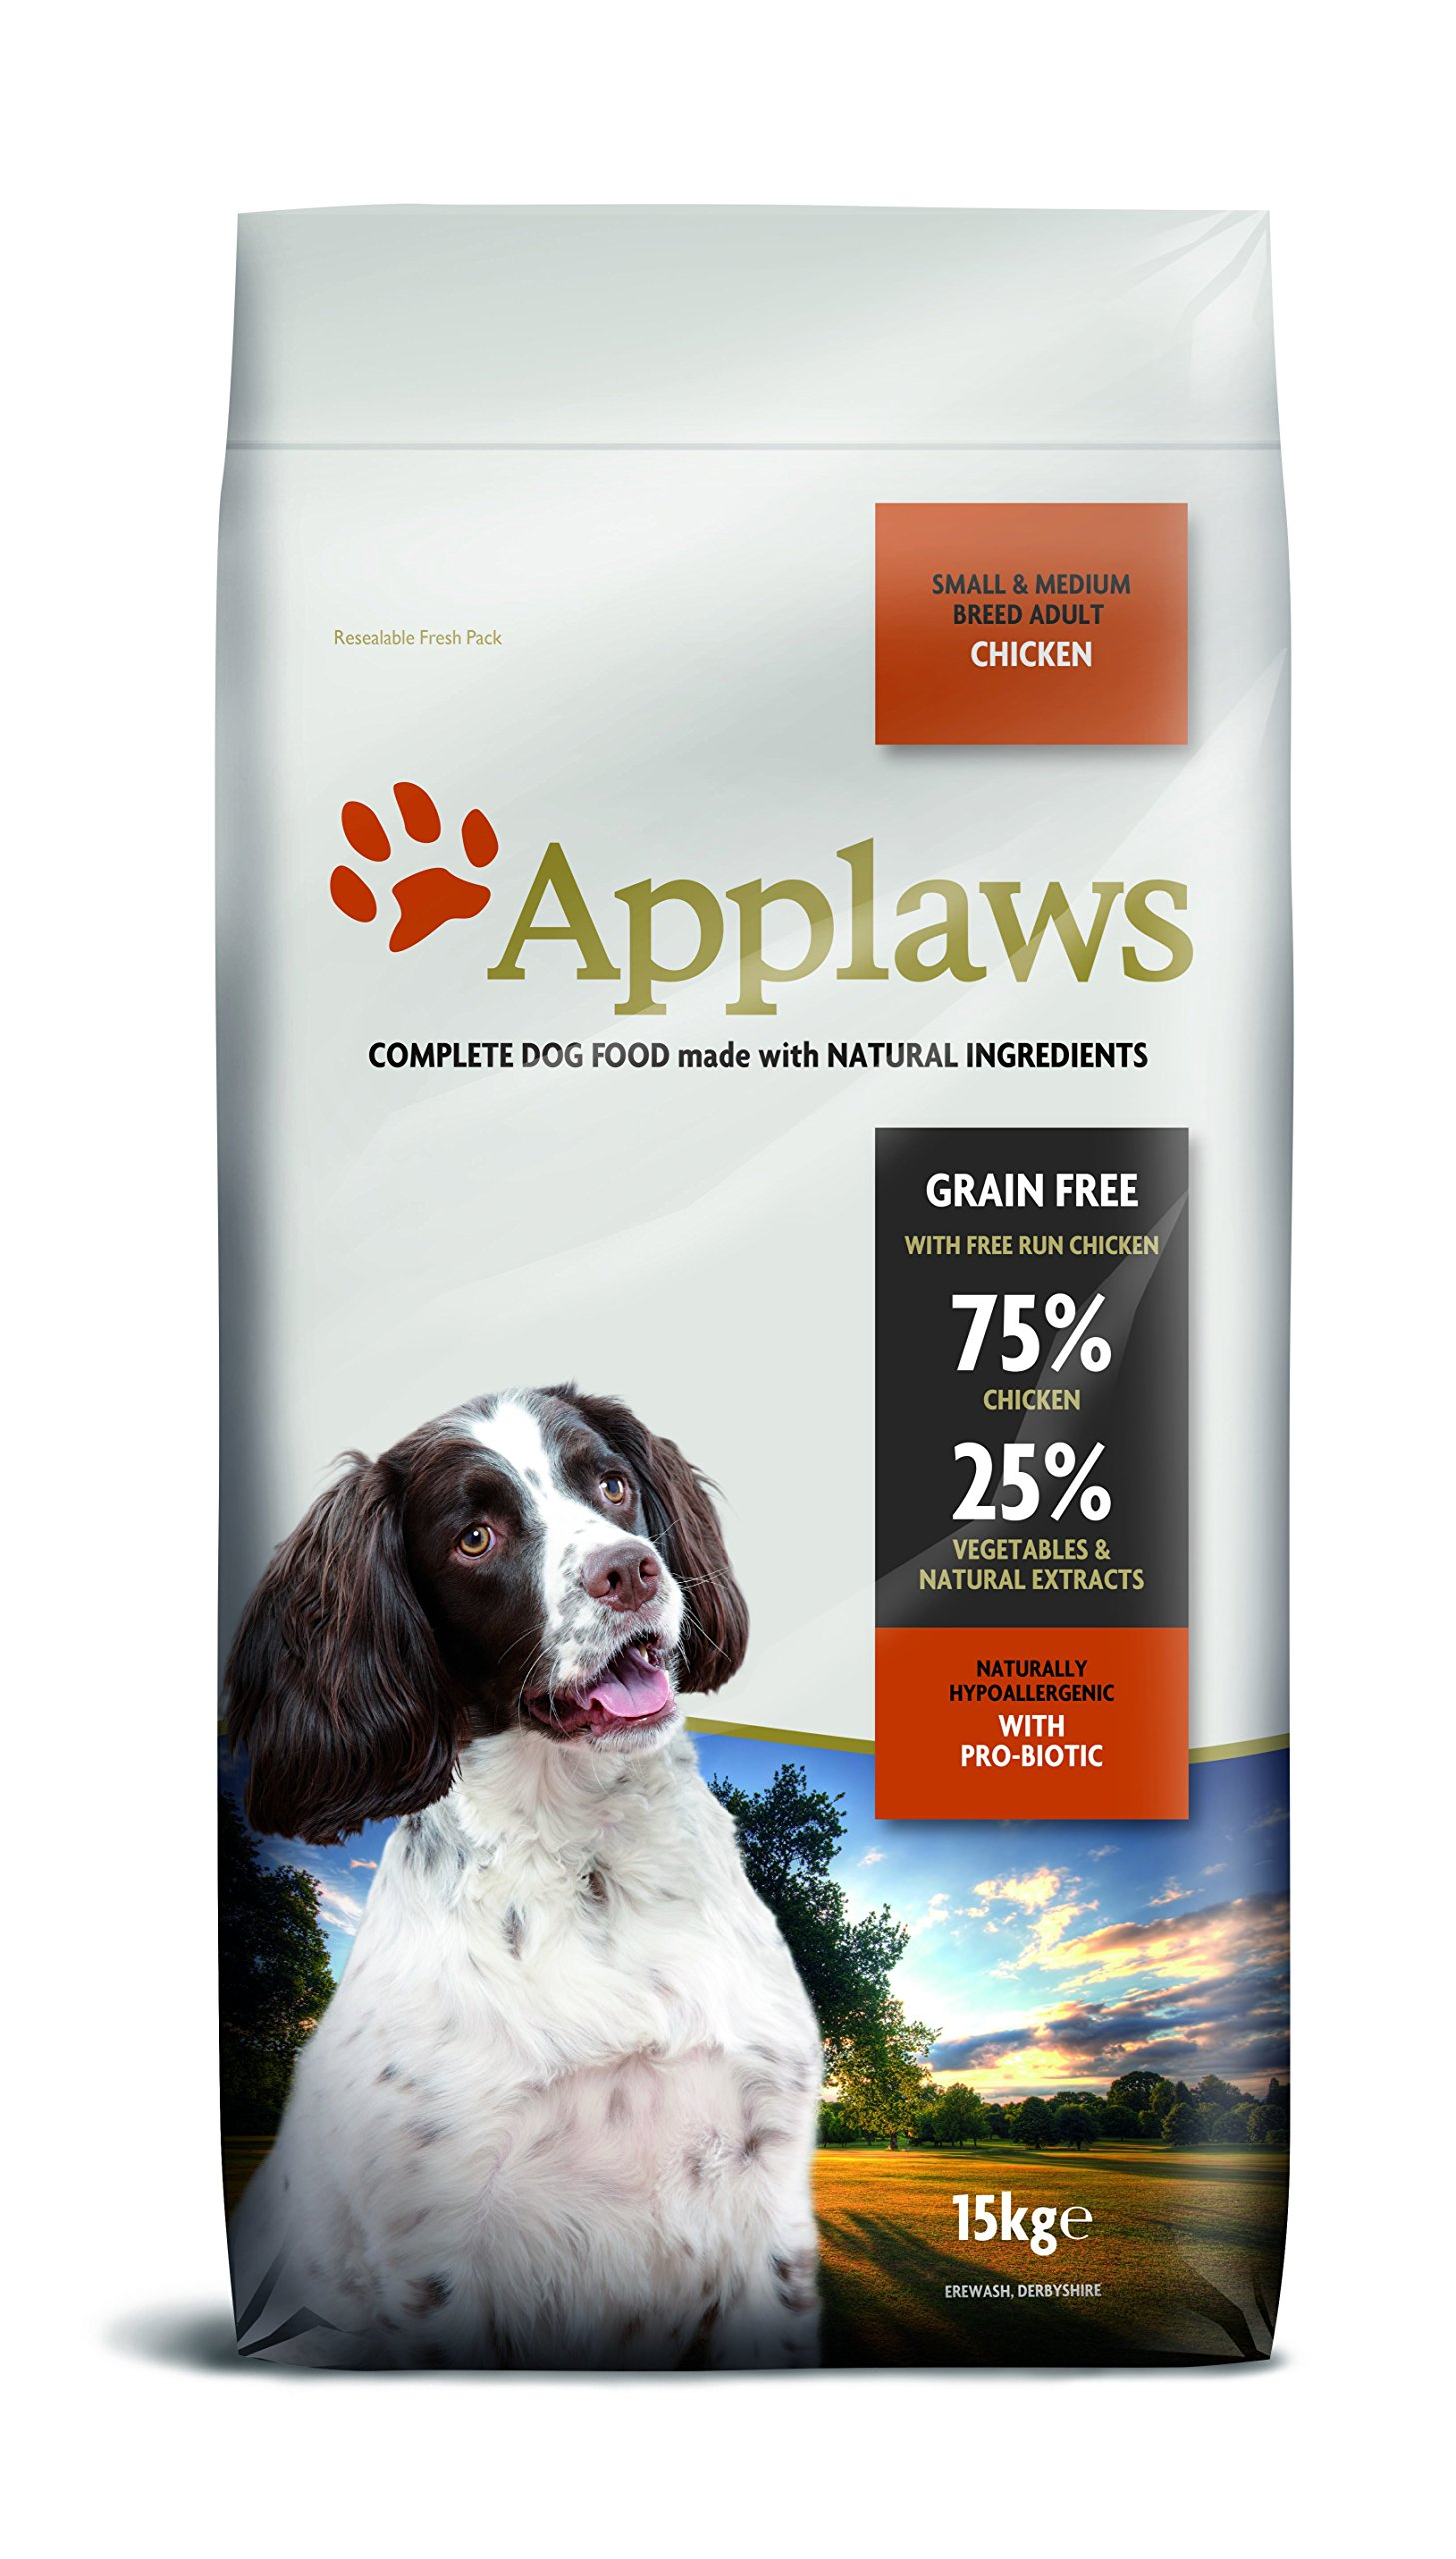 Applaws Natural, Complete Dry Dog 15kg Small/Medium breed Adult Chicken with Lamb